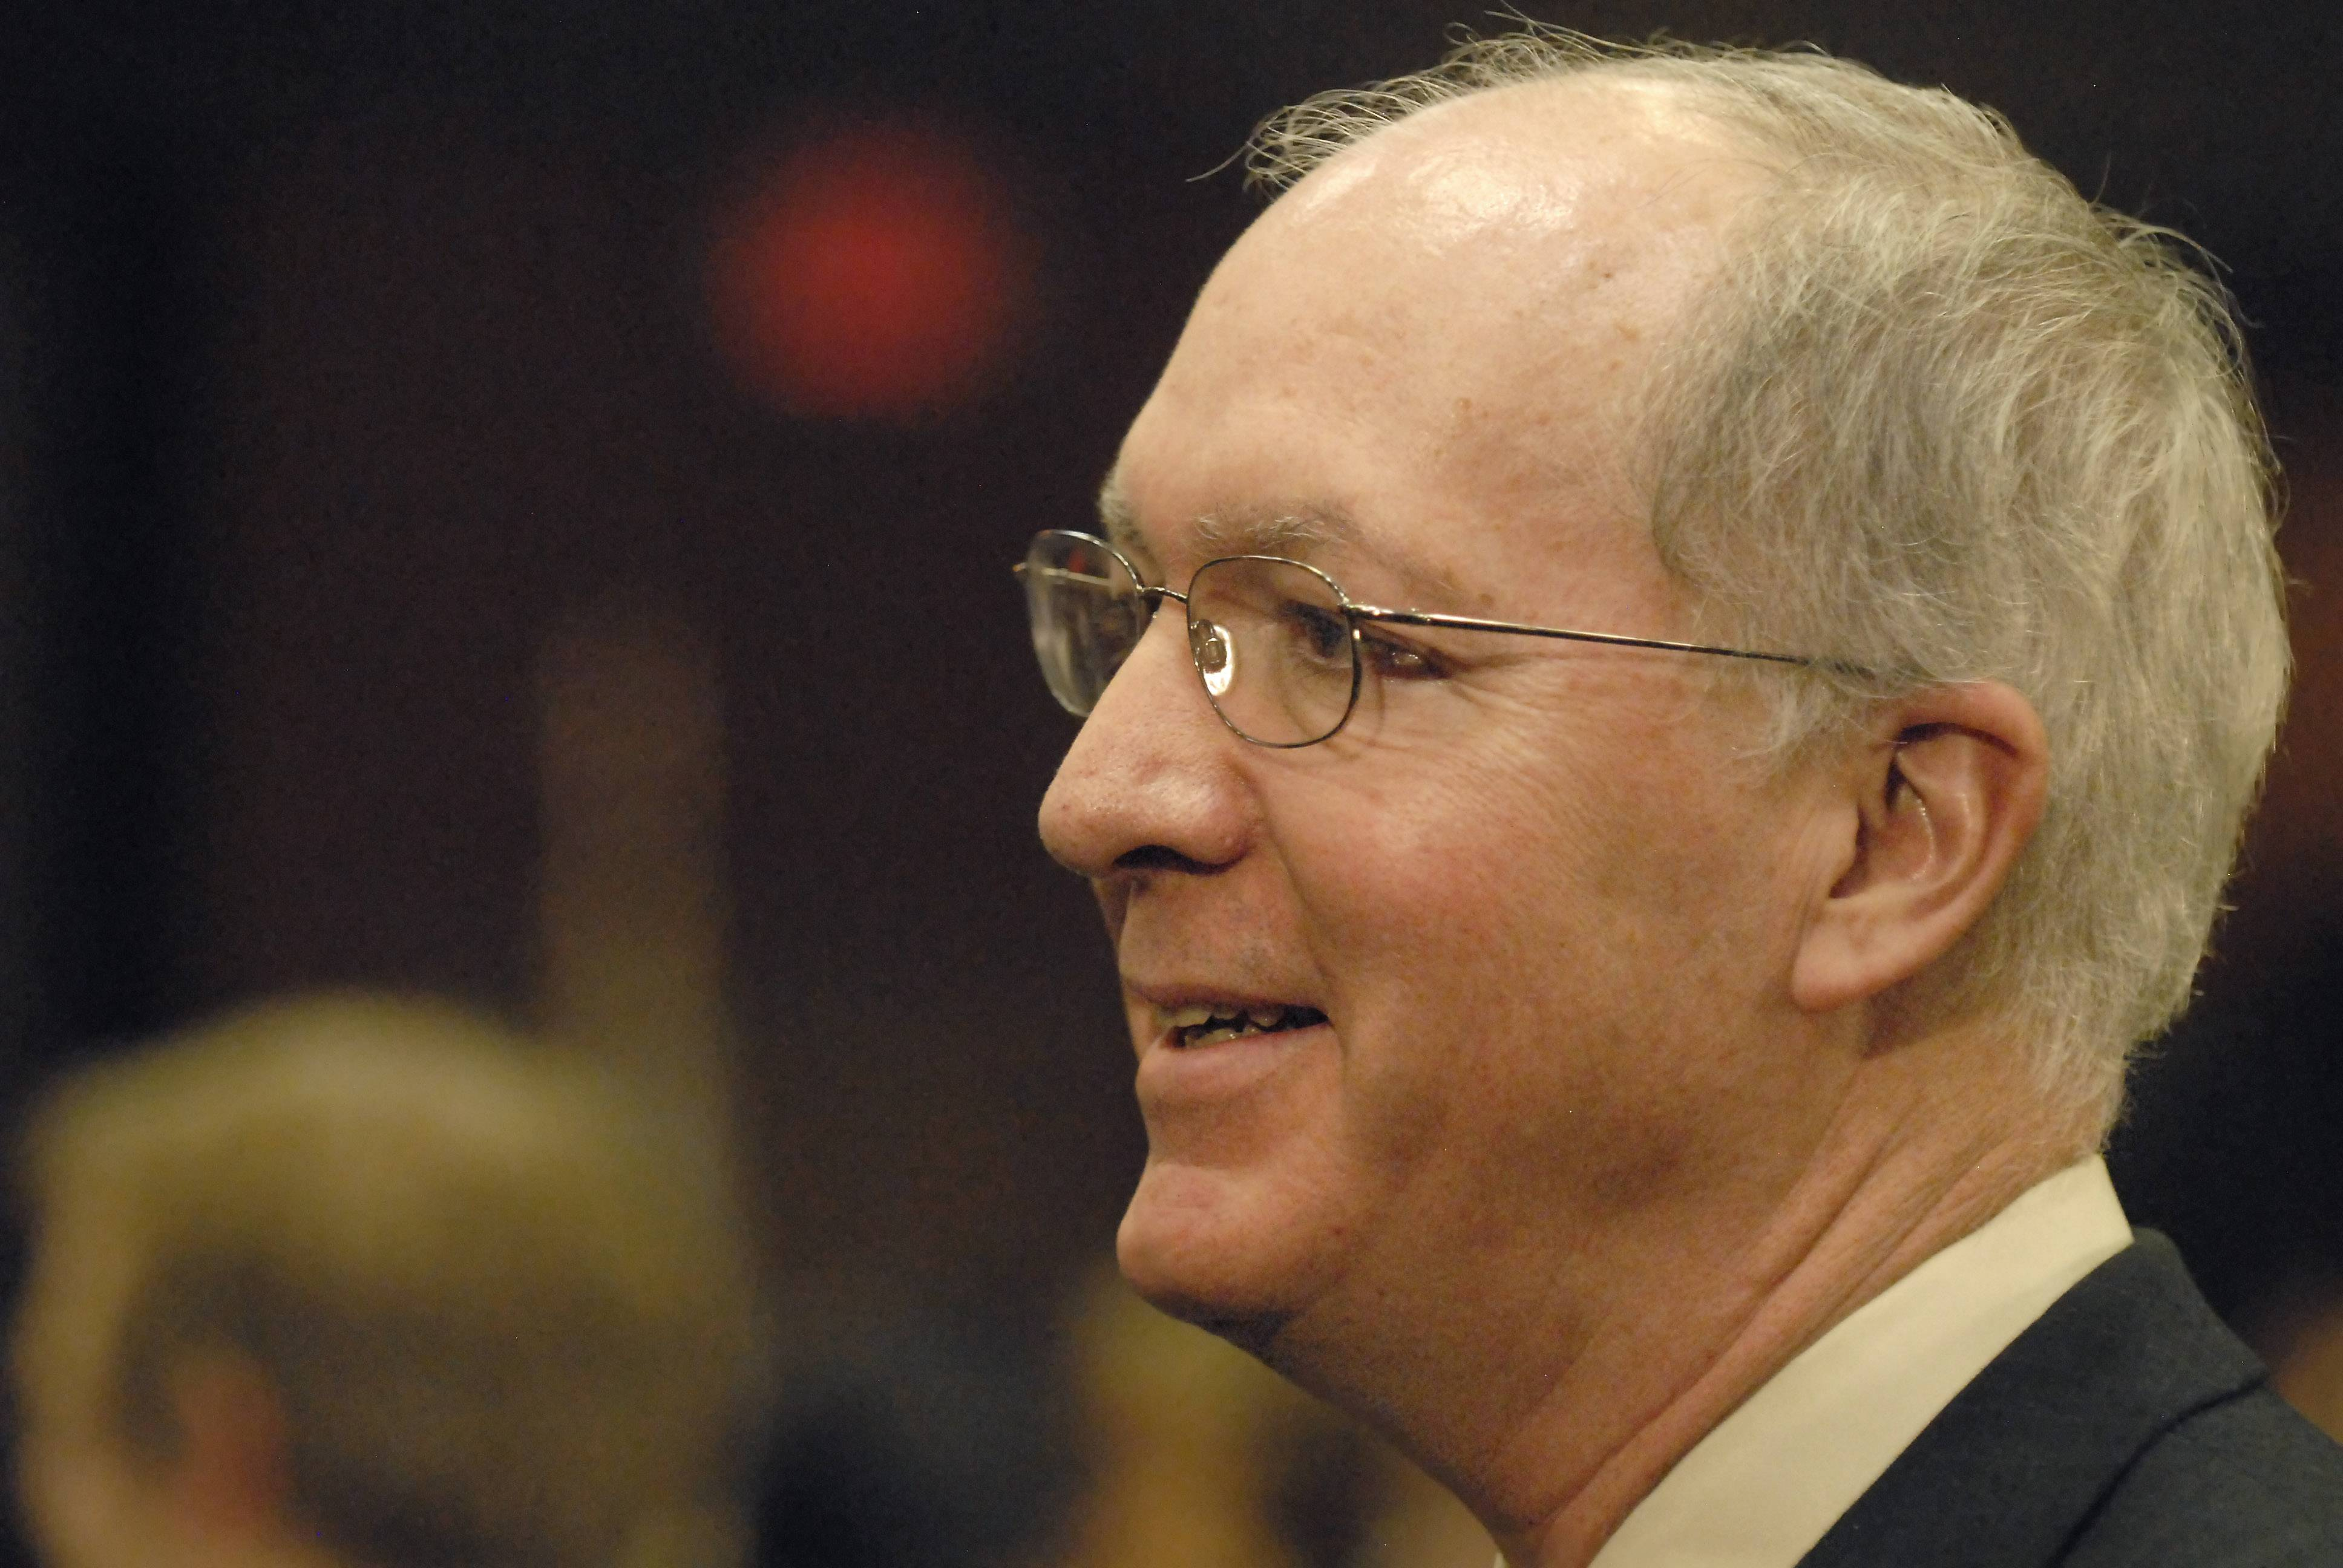 U.S. Rep. Bill Foster is considering a 2016 run for U.S. Senate against incumbent Mark Kirk.